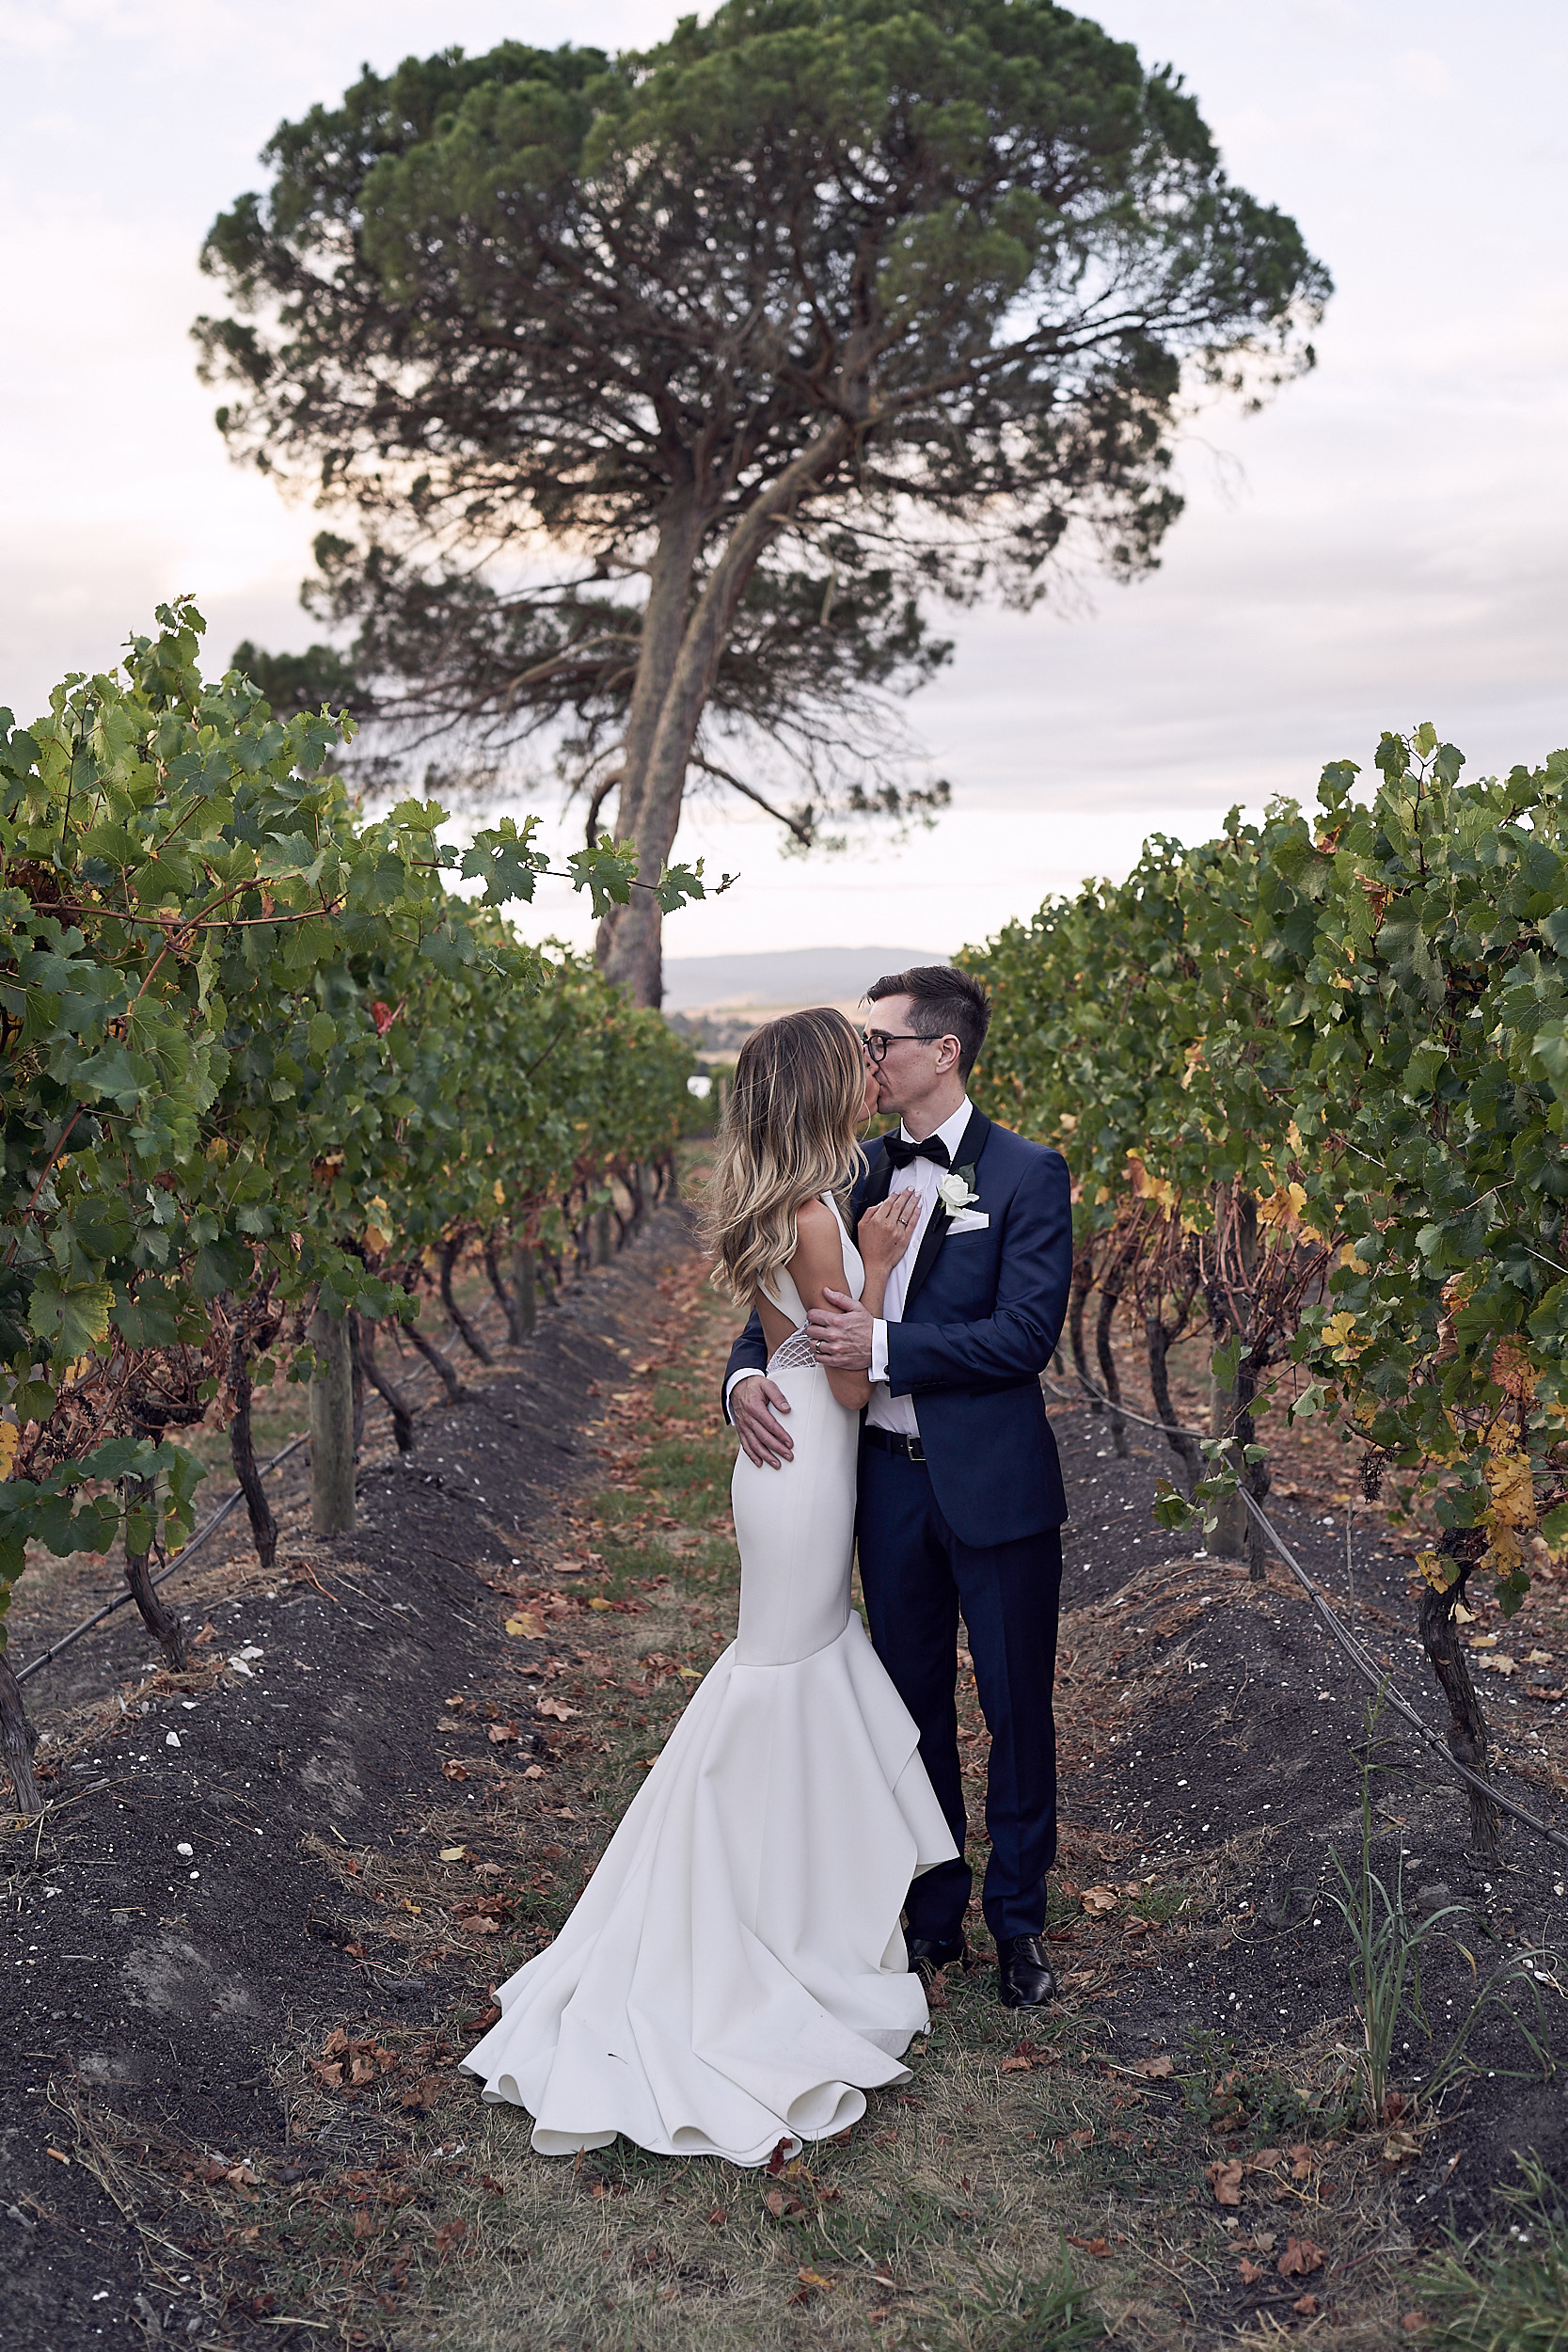 Stunning wedding photo Stones Of The Yarra Valley by Lost In Love